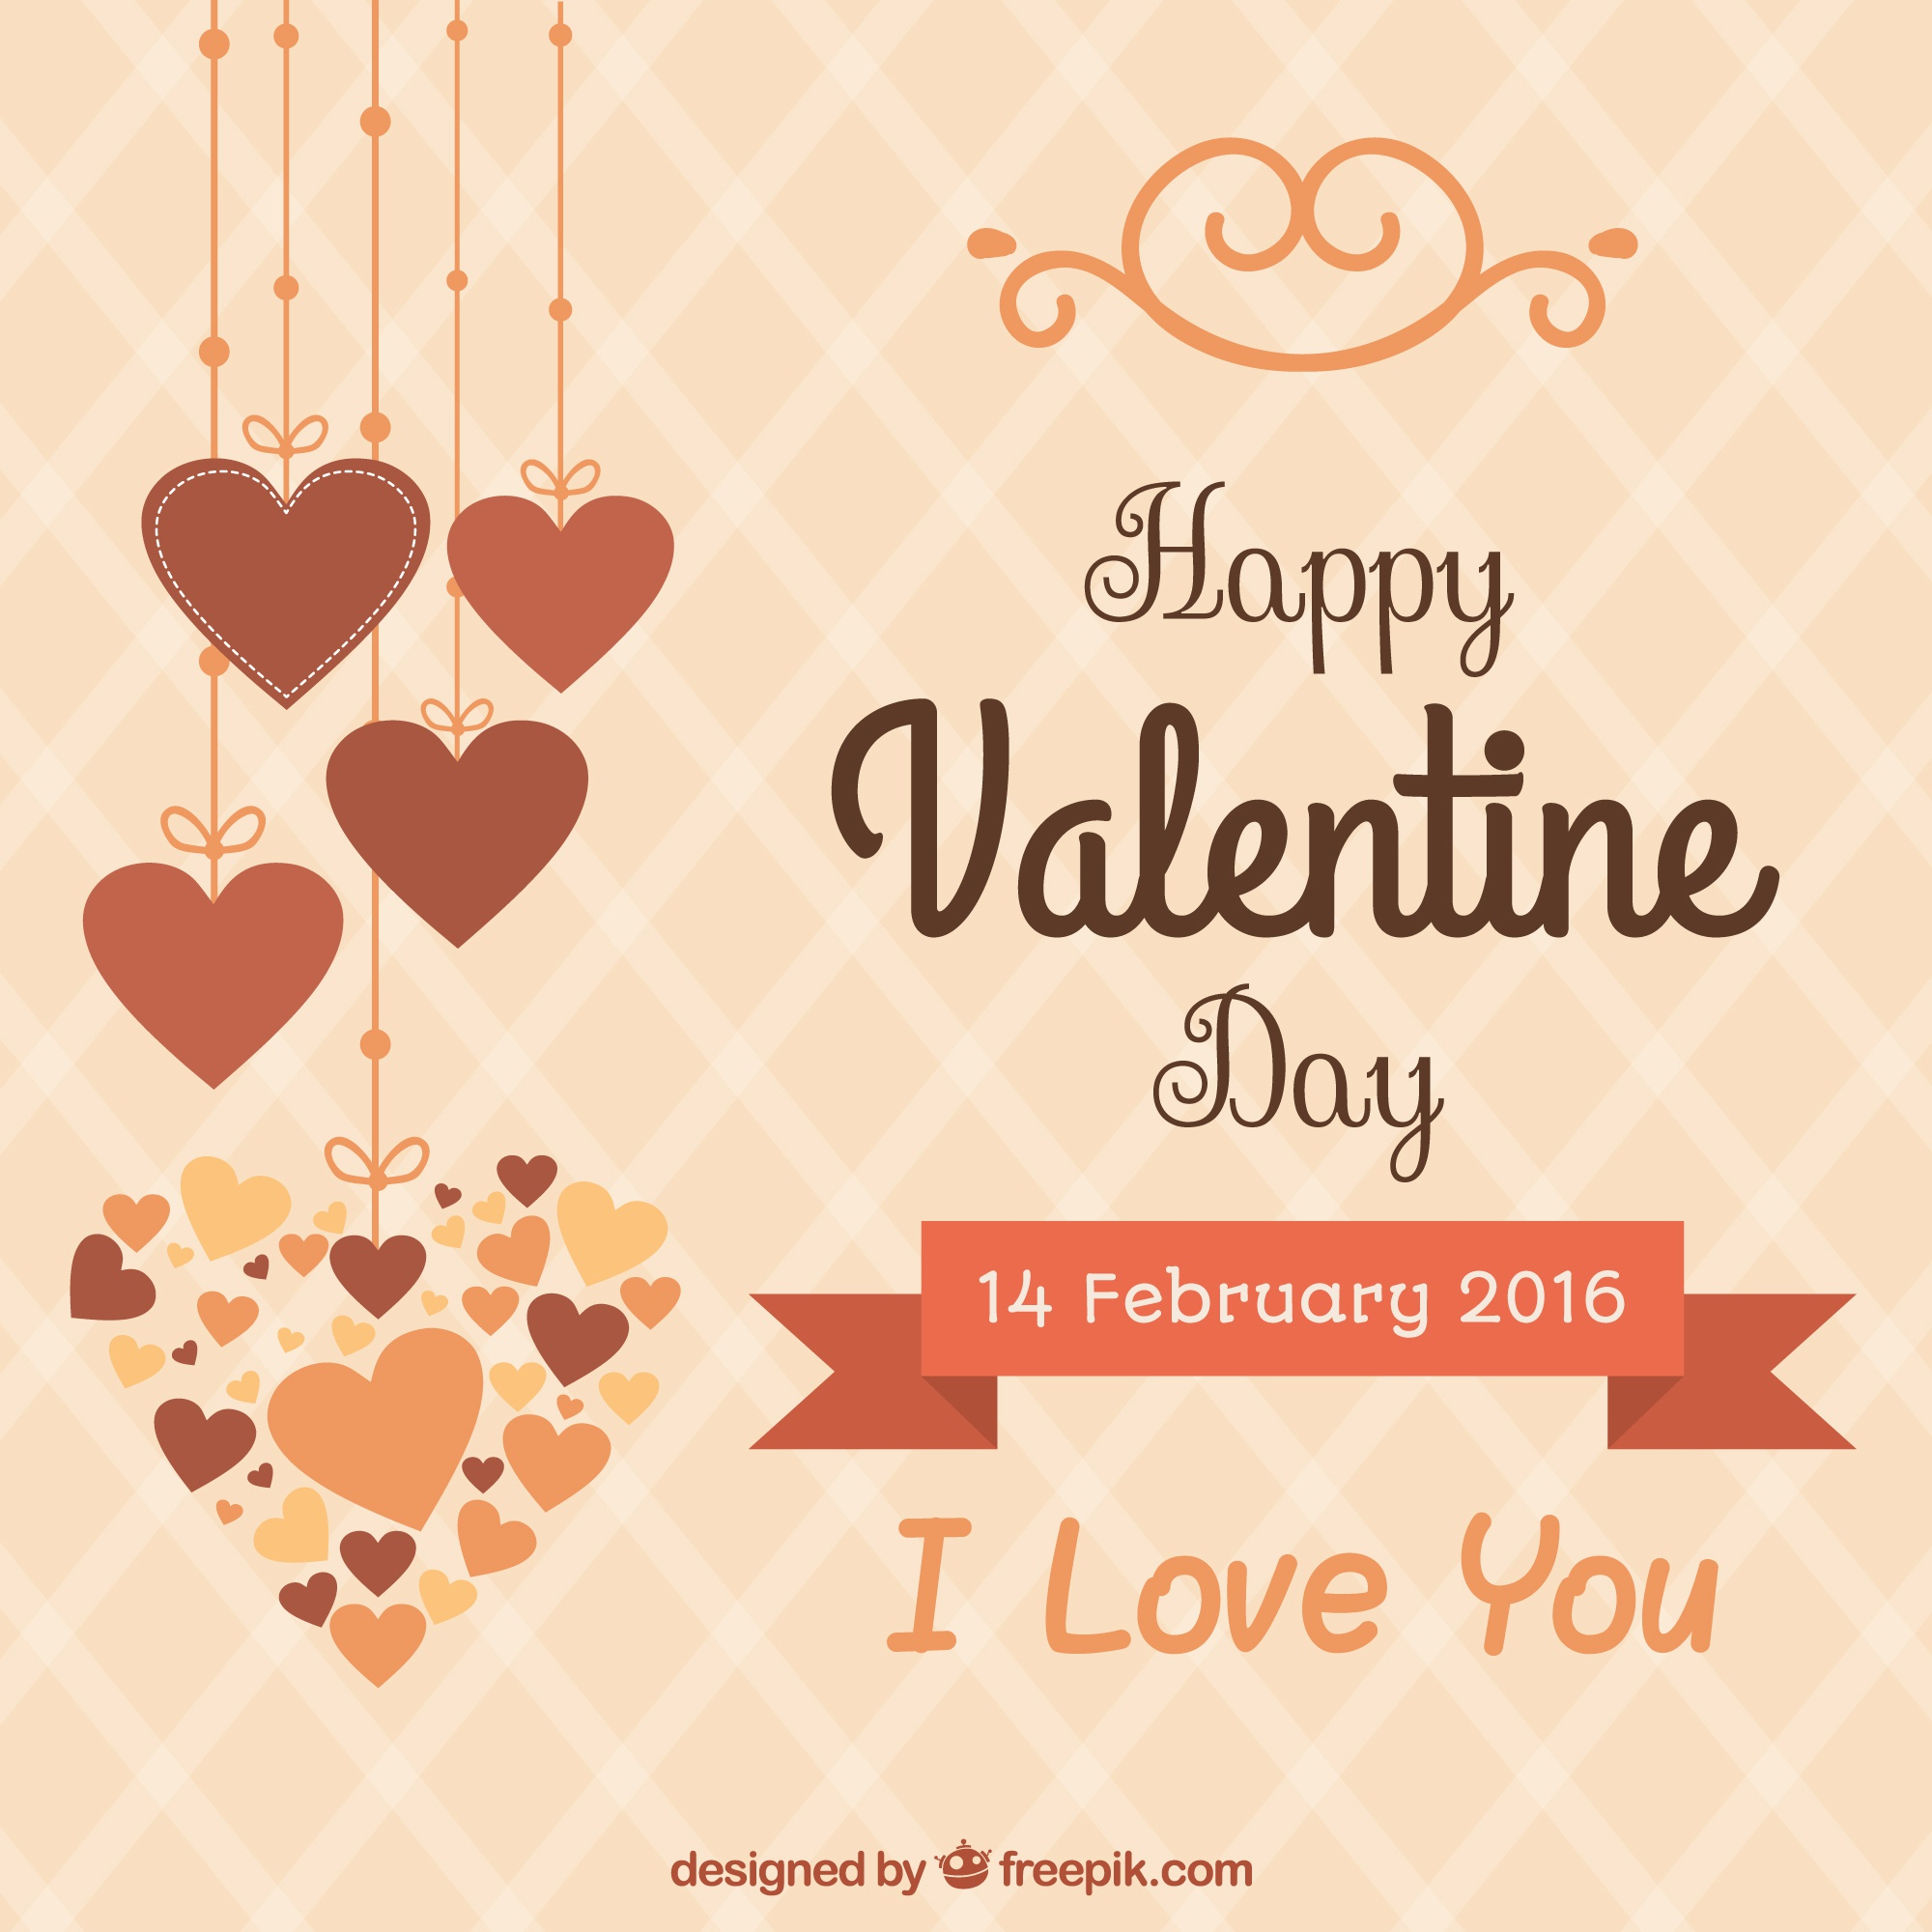 Cute happy valentine day background